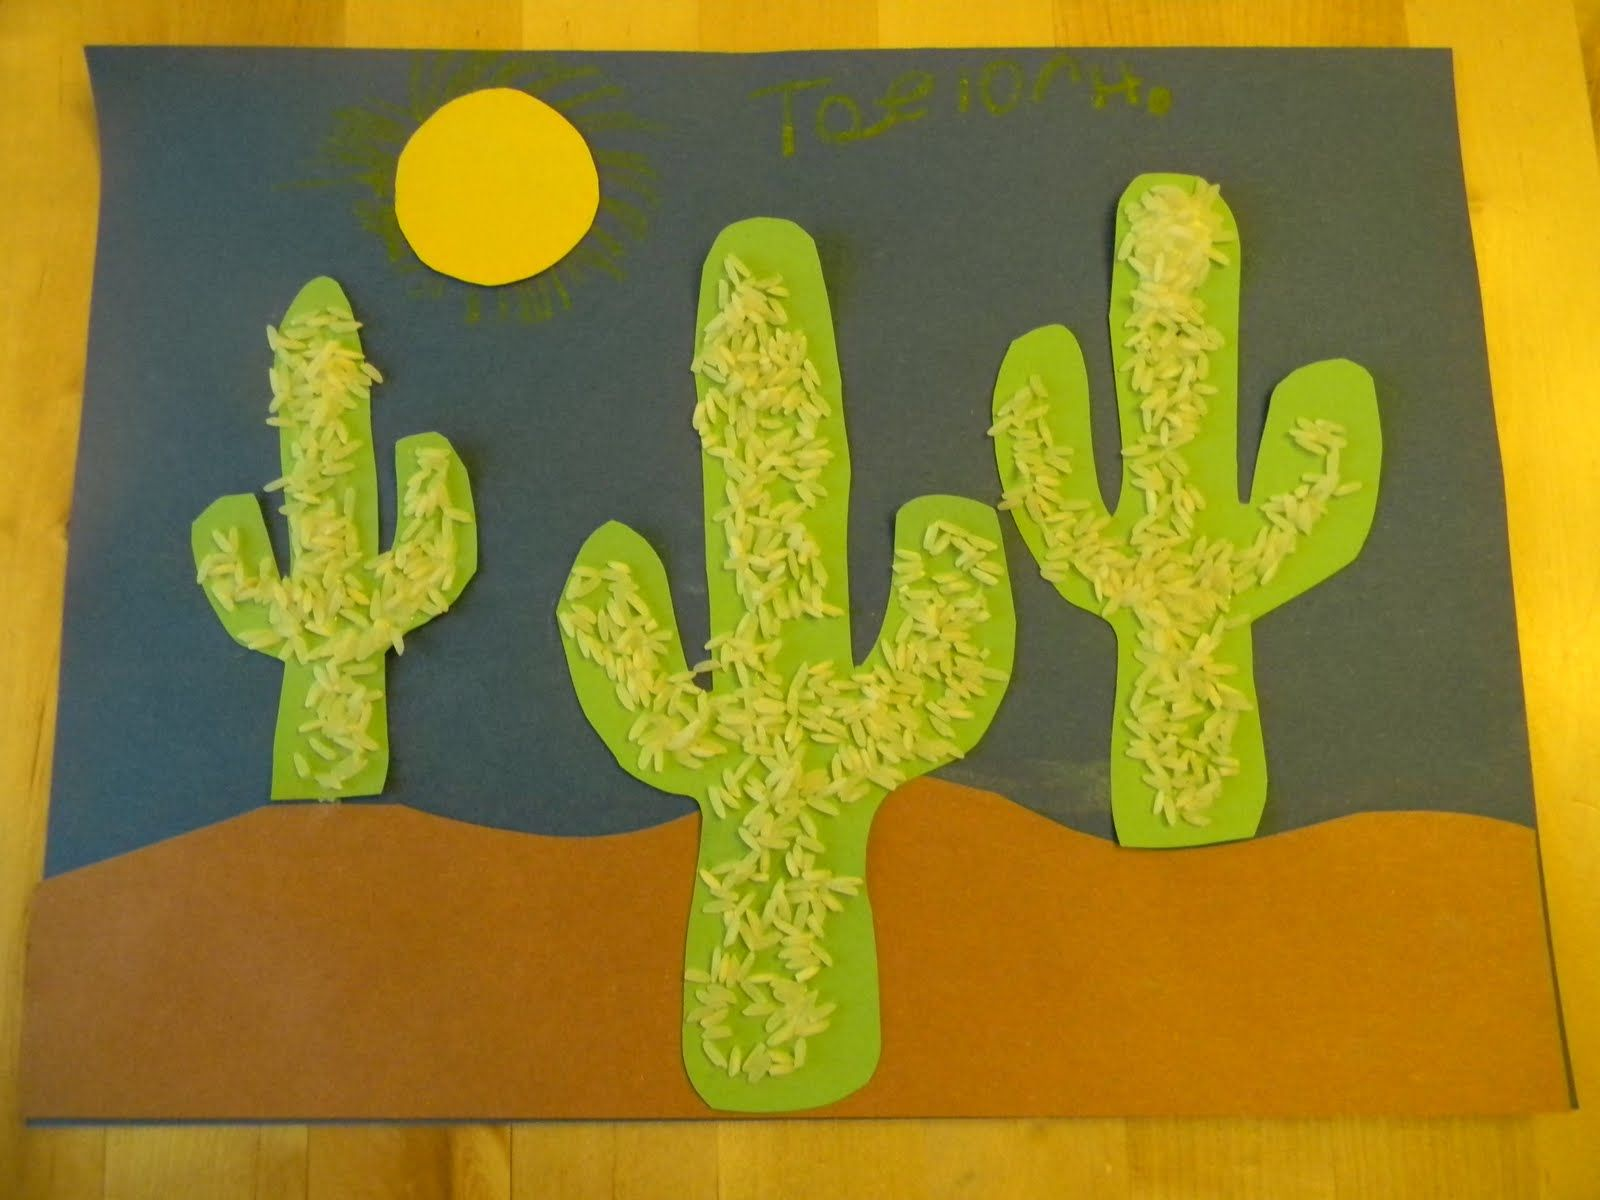 Rice cactus art project. | The Wild West | Pinterest | Cacti, School ...